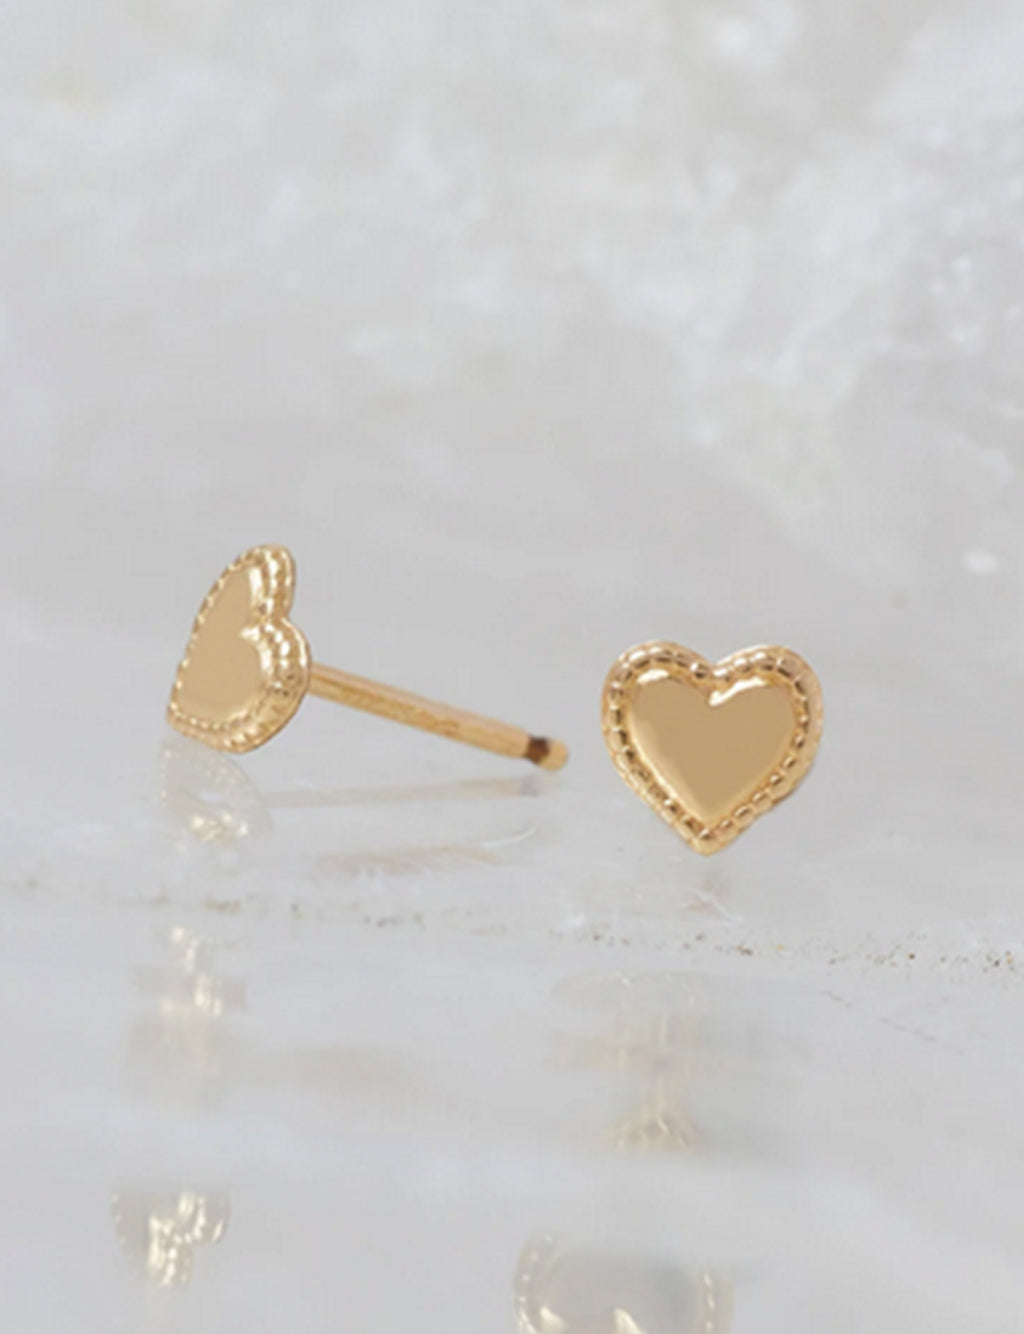 Natalie B Heart Studs in 14K Gold Fill